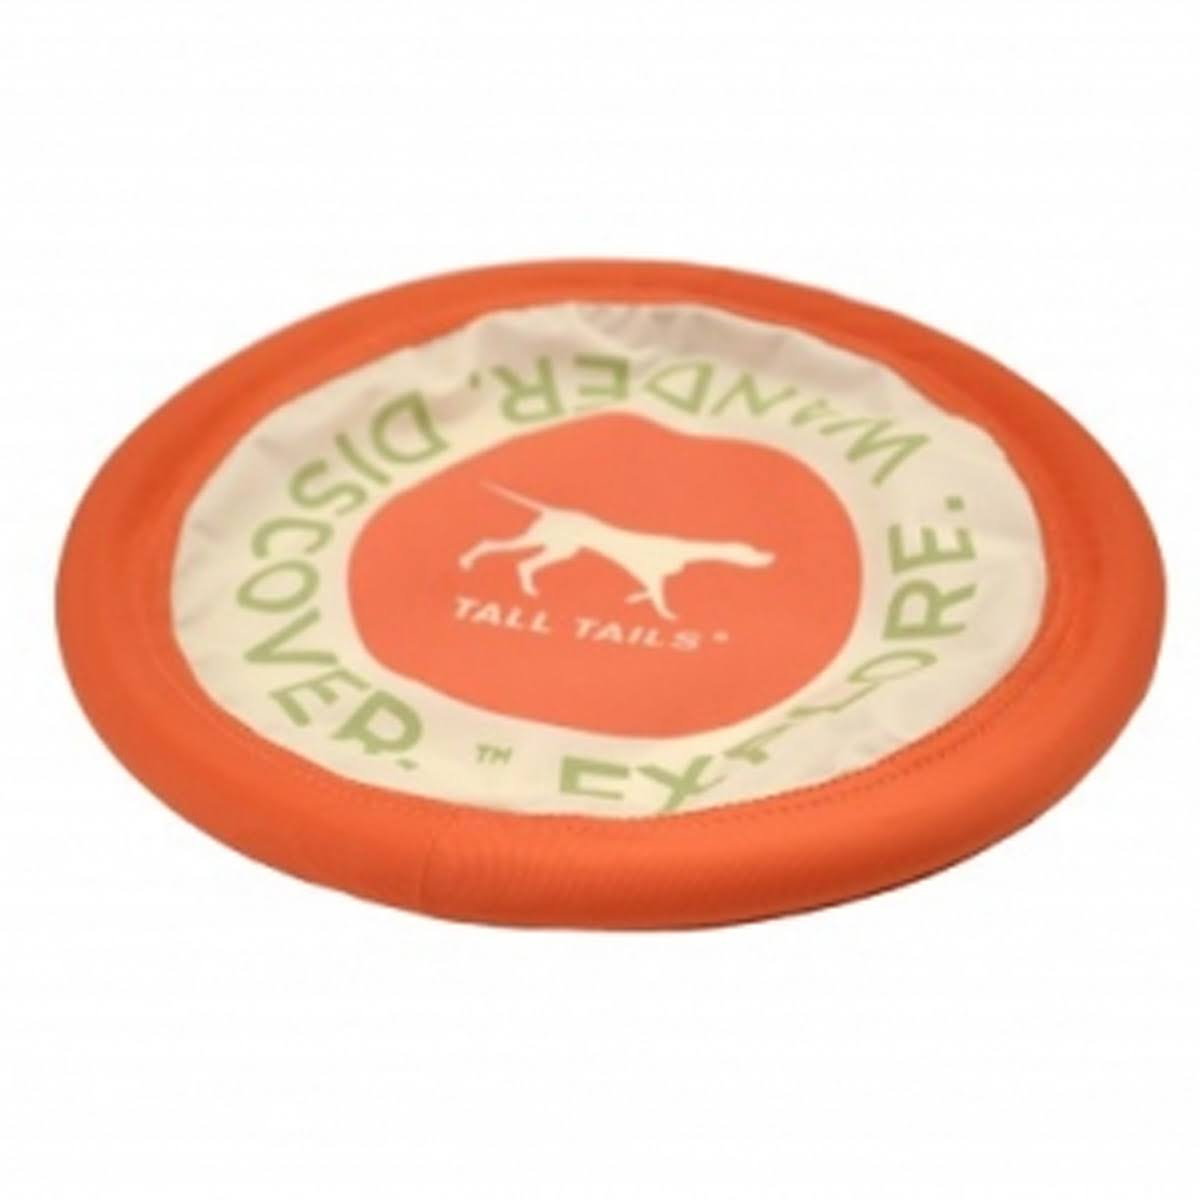 "Tall Tails 7"" Flying Disc"